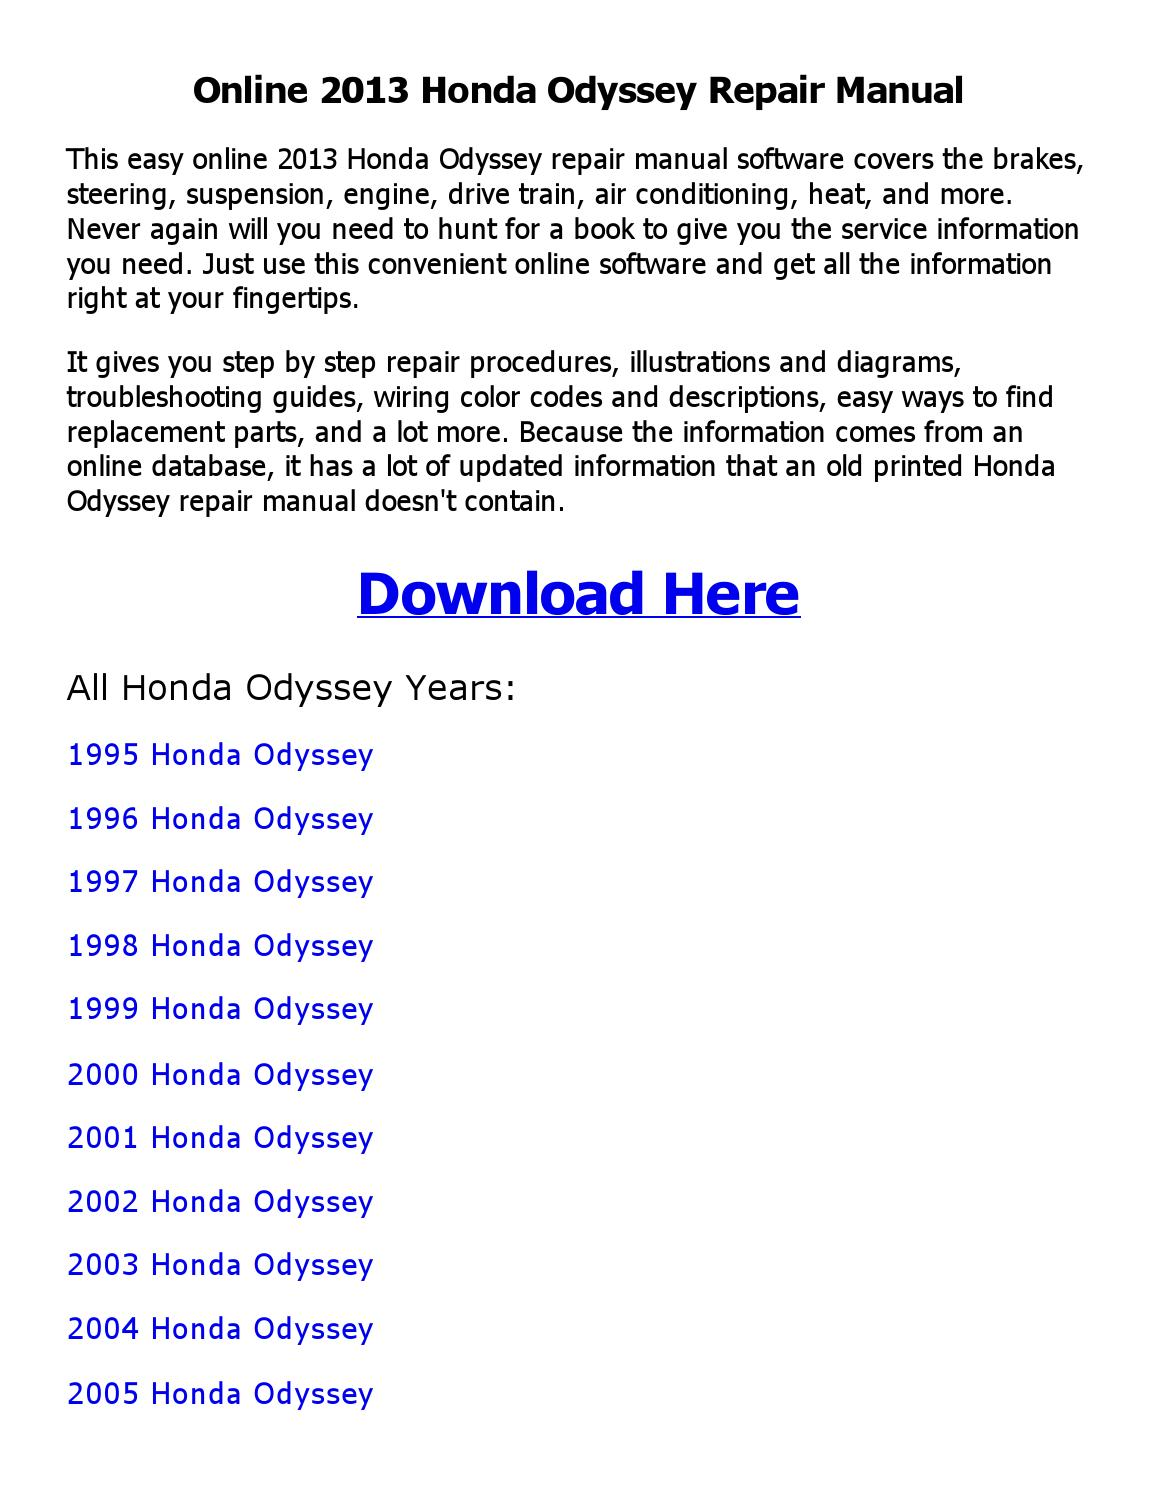 Honda Odyssey Parts Diagram 2013 Repair Manual Online By Akosipriix Issuu